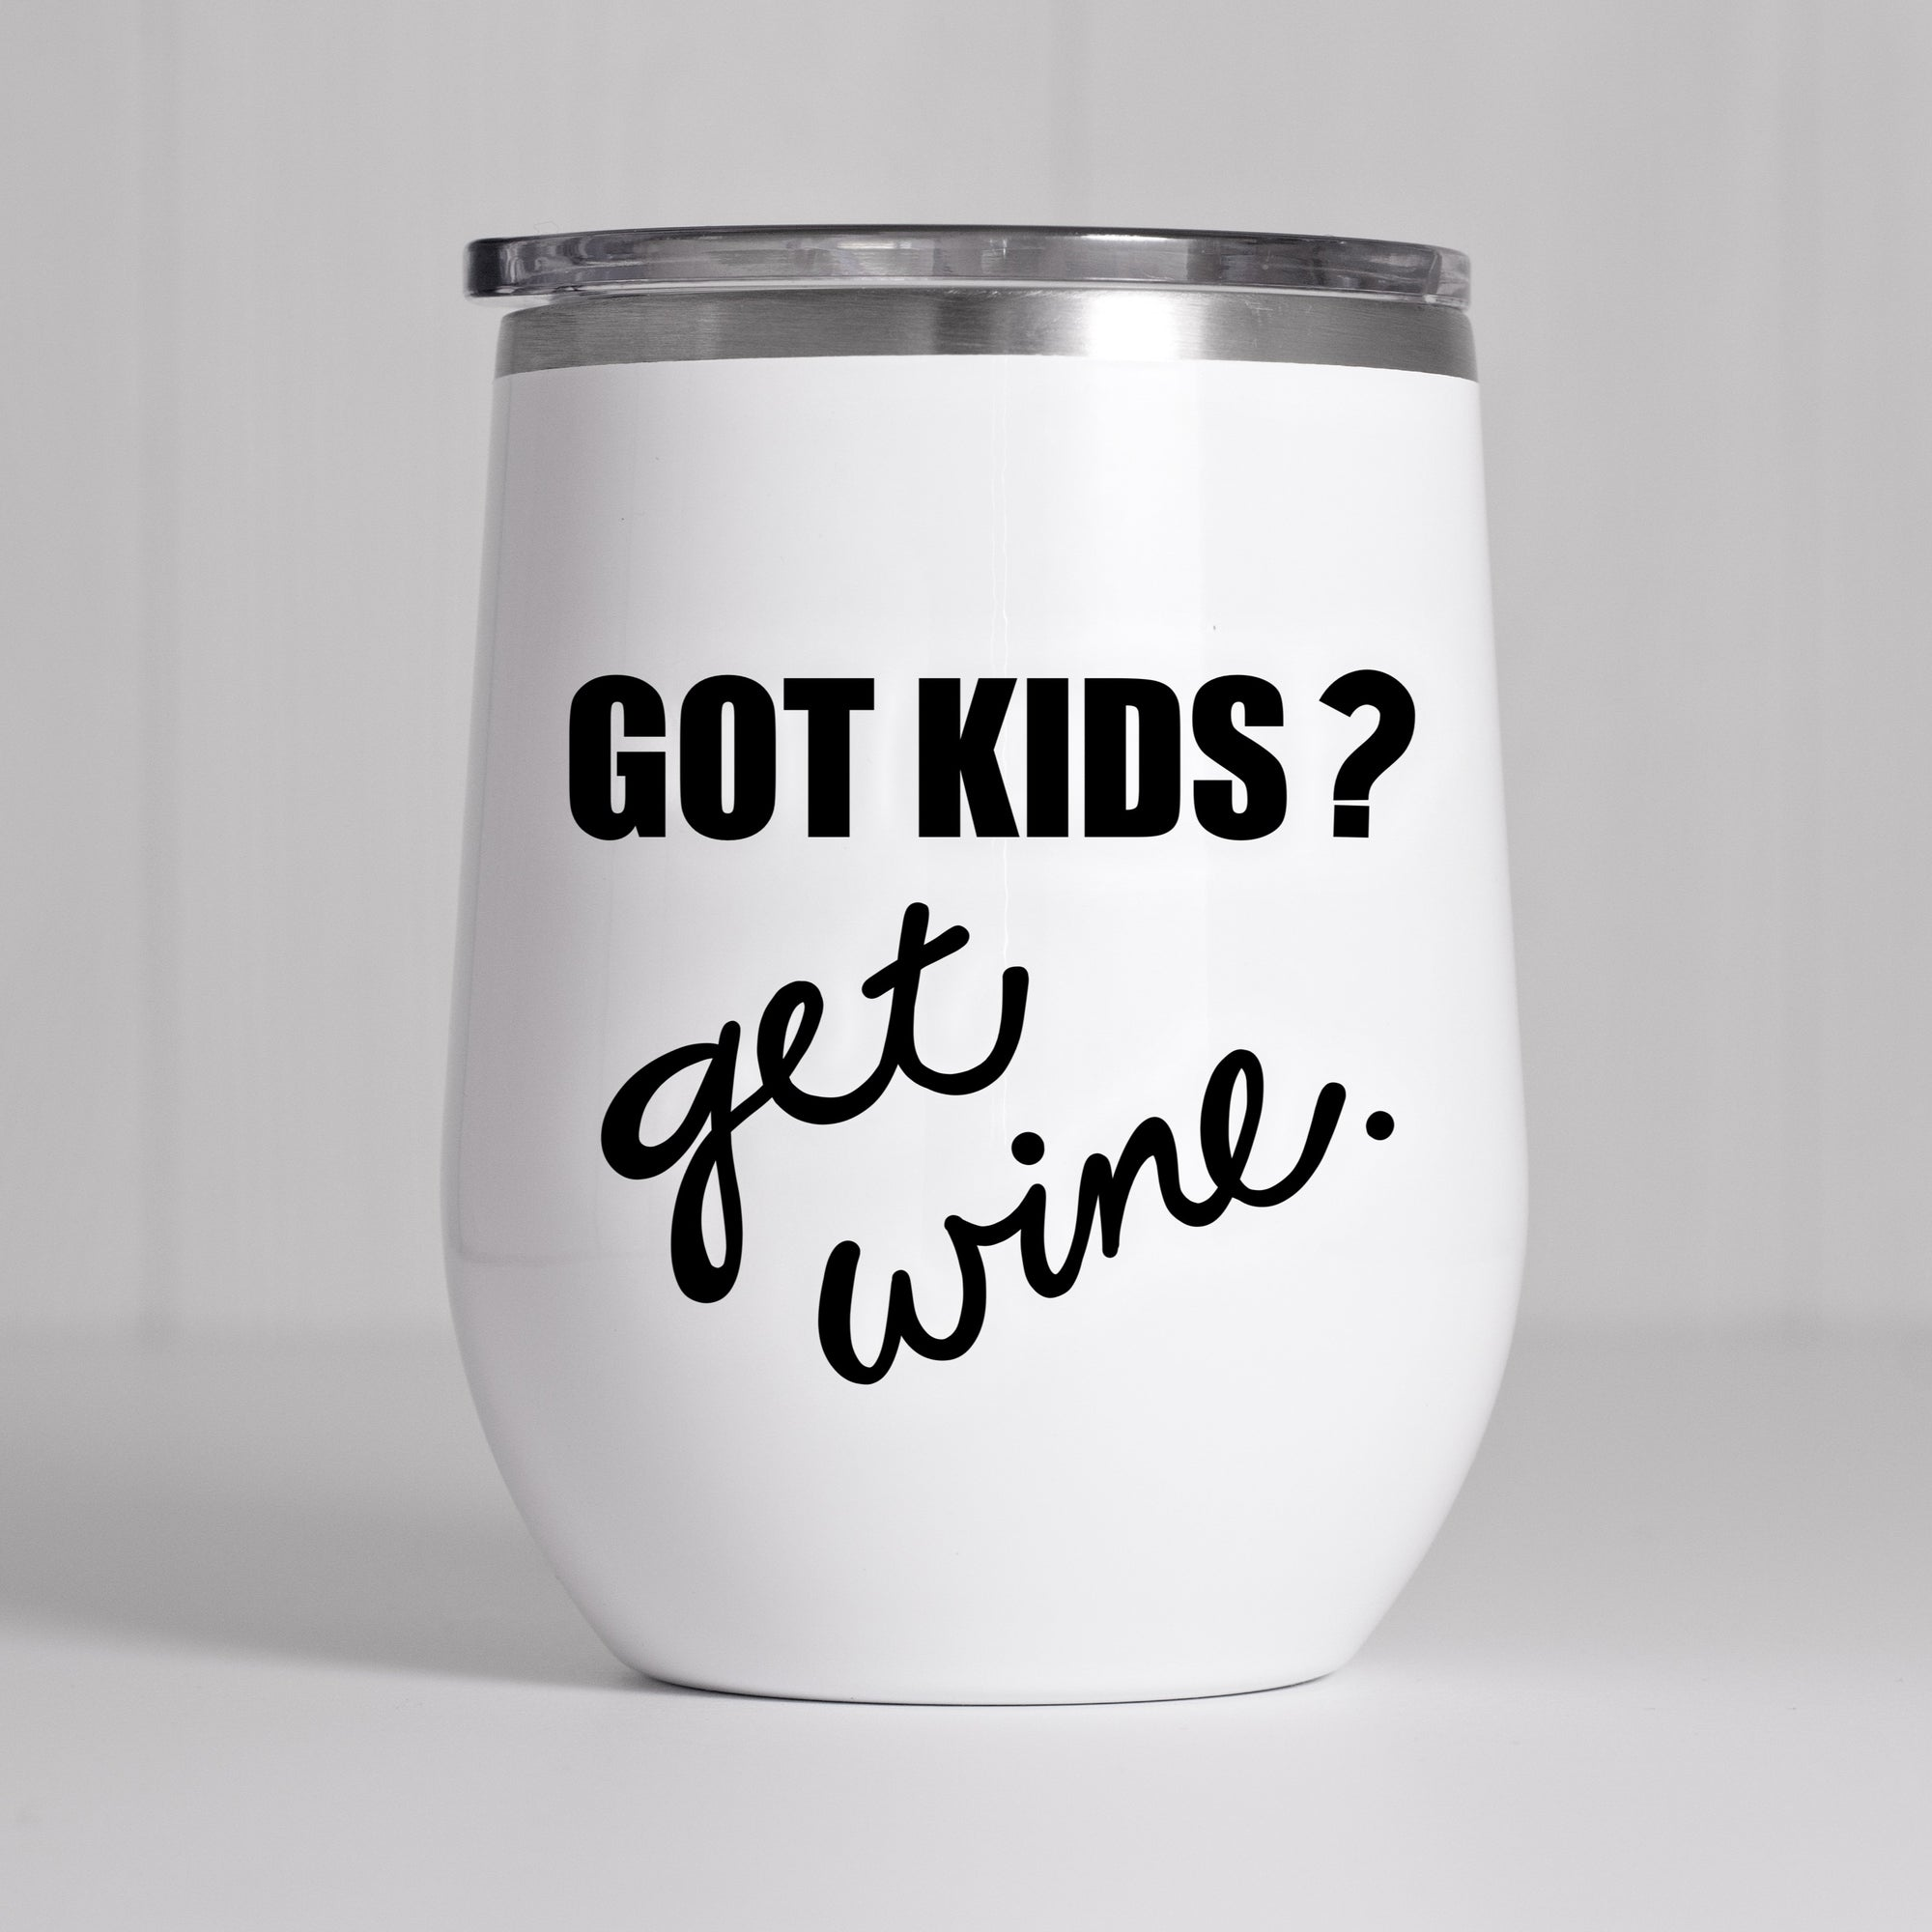 FUNNY WINE GLASS SVG, Wine Glass Saying SVG File, Got Kids Saying SVG, Got Kids Get Wine SVG Cut File